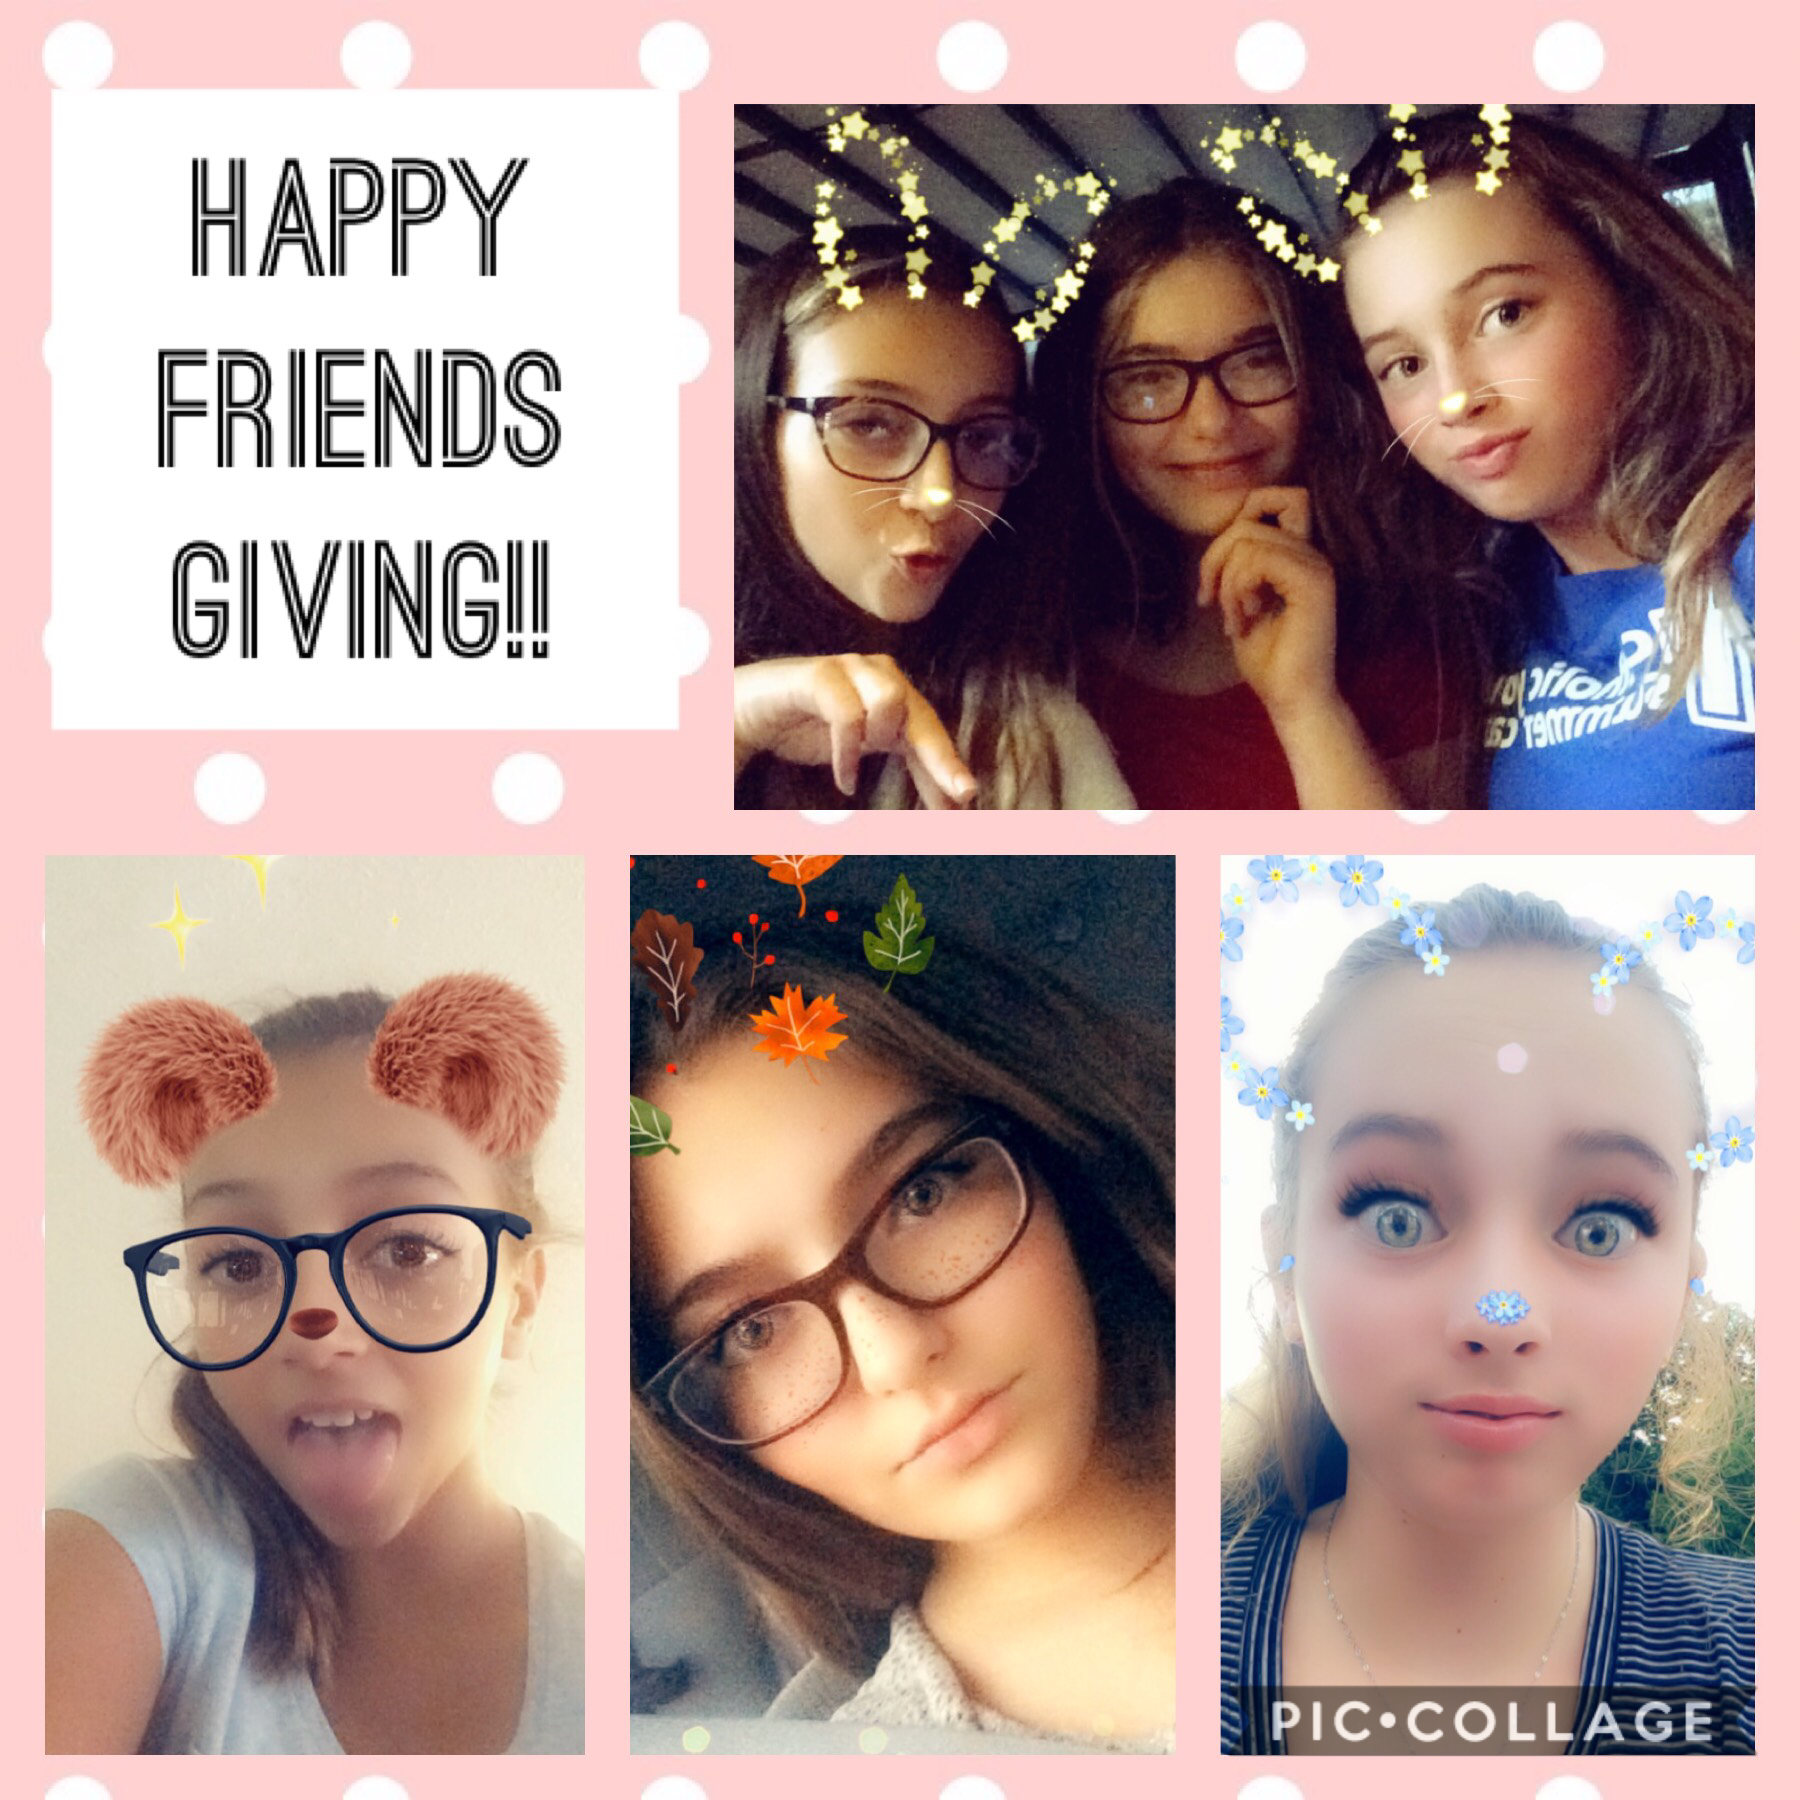 Friends giving!!!! 🤘⚓️❤️